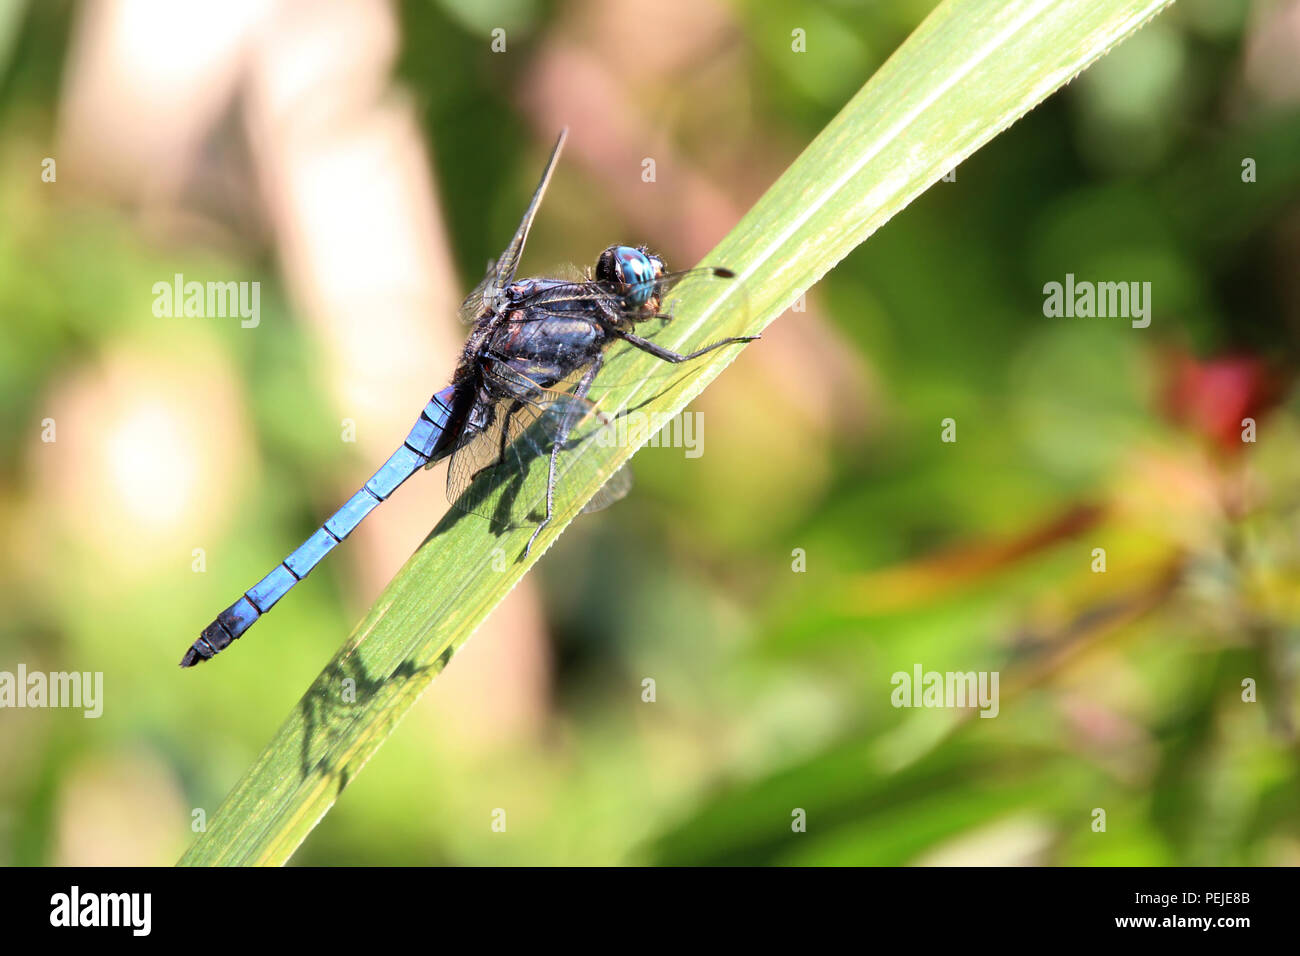 A close up shot on a blue dragonfly which is landing on a leaf, it has large compound eyes, transparent wings, and elongated body - Stock Image